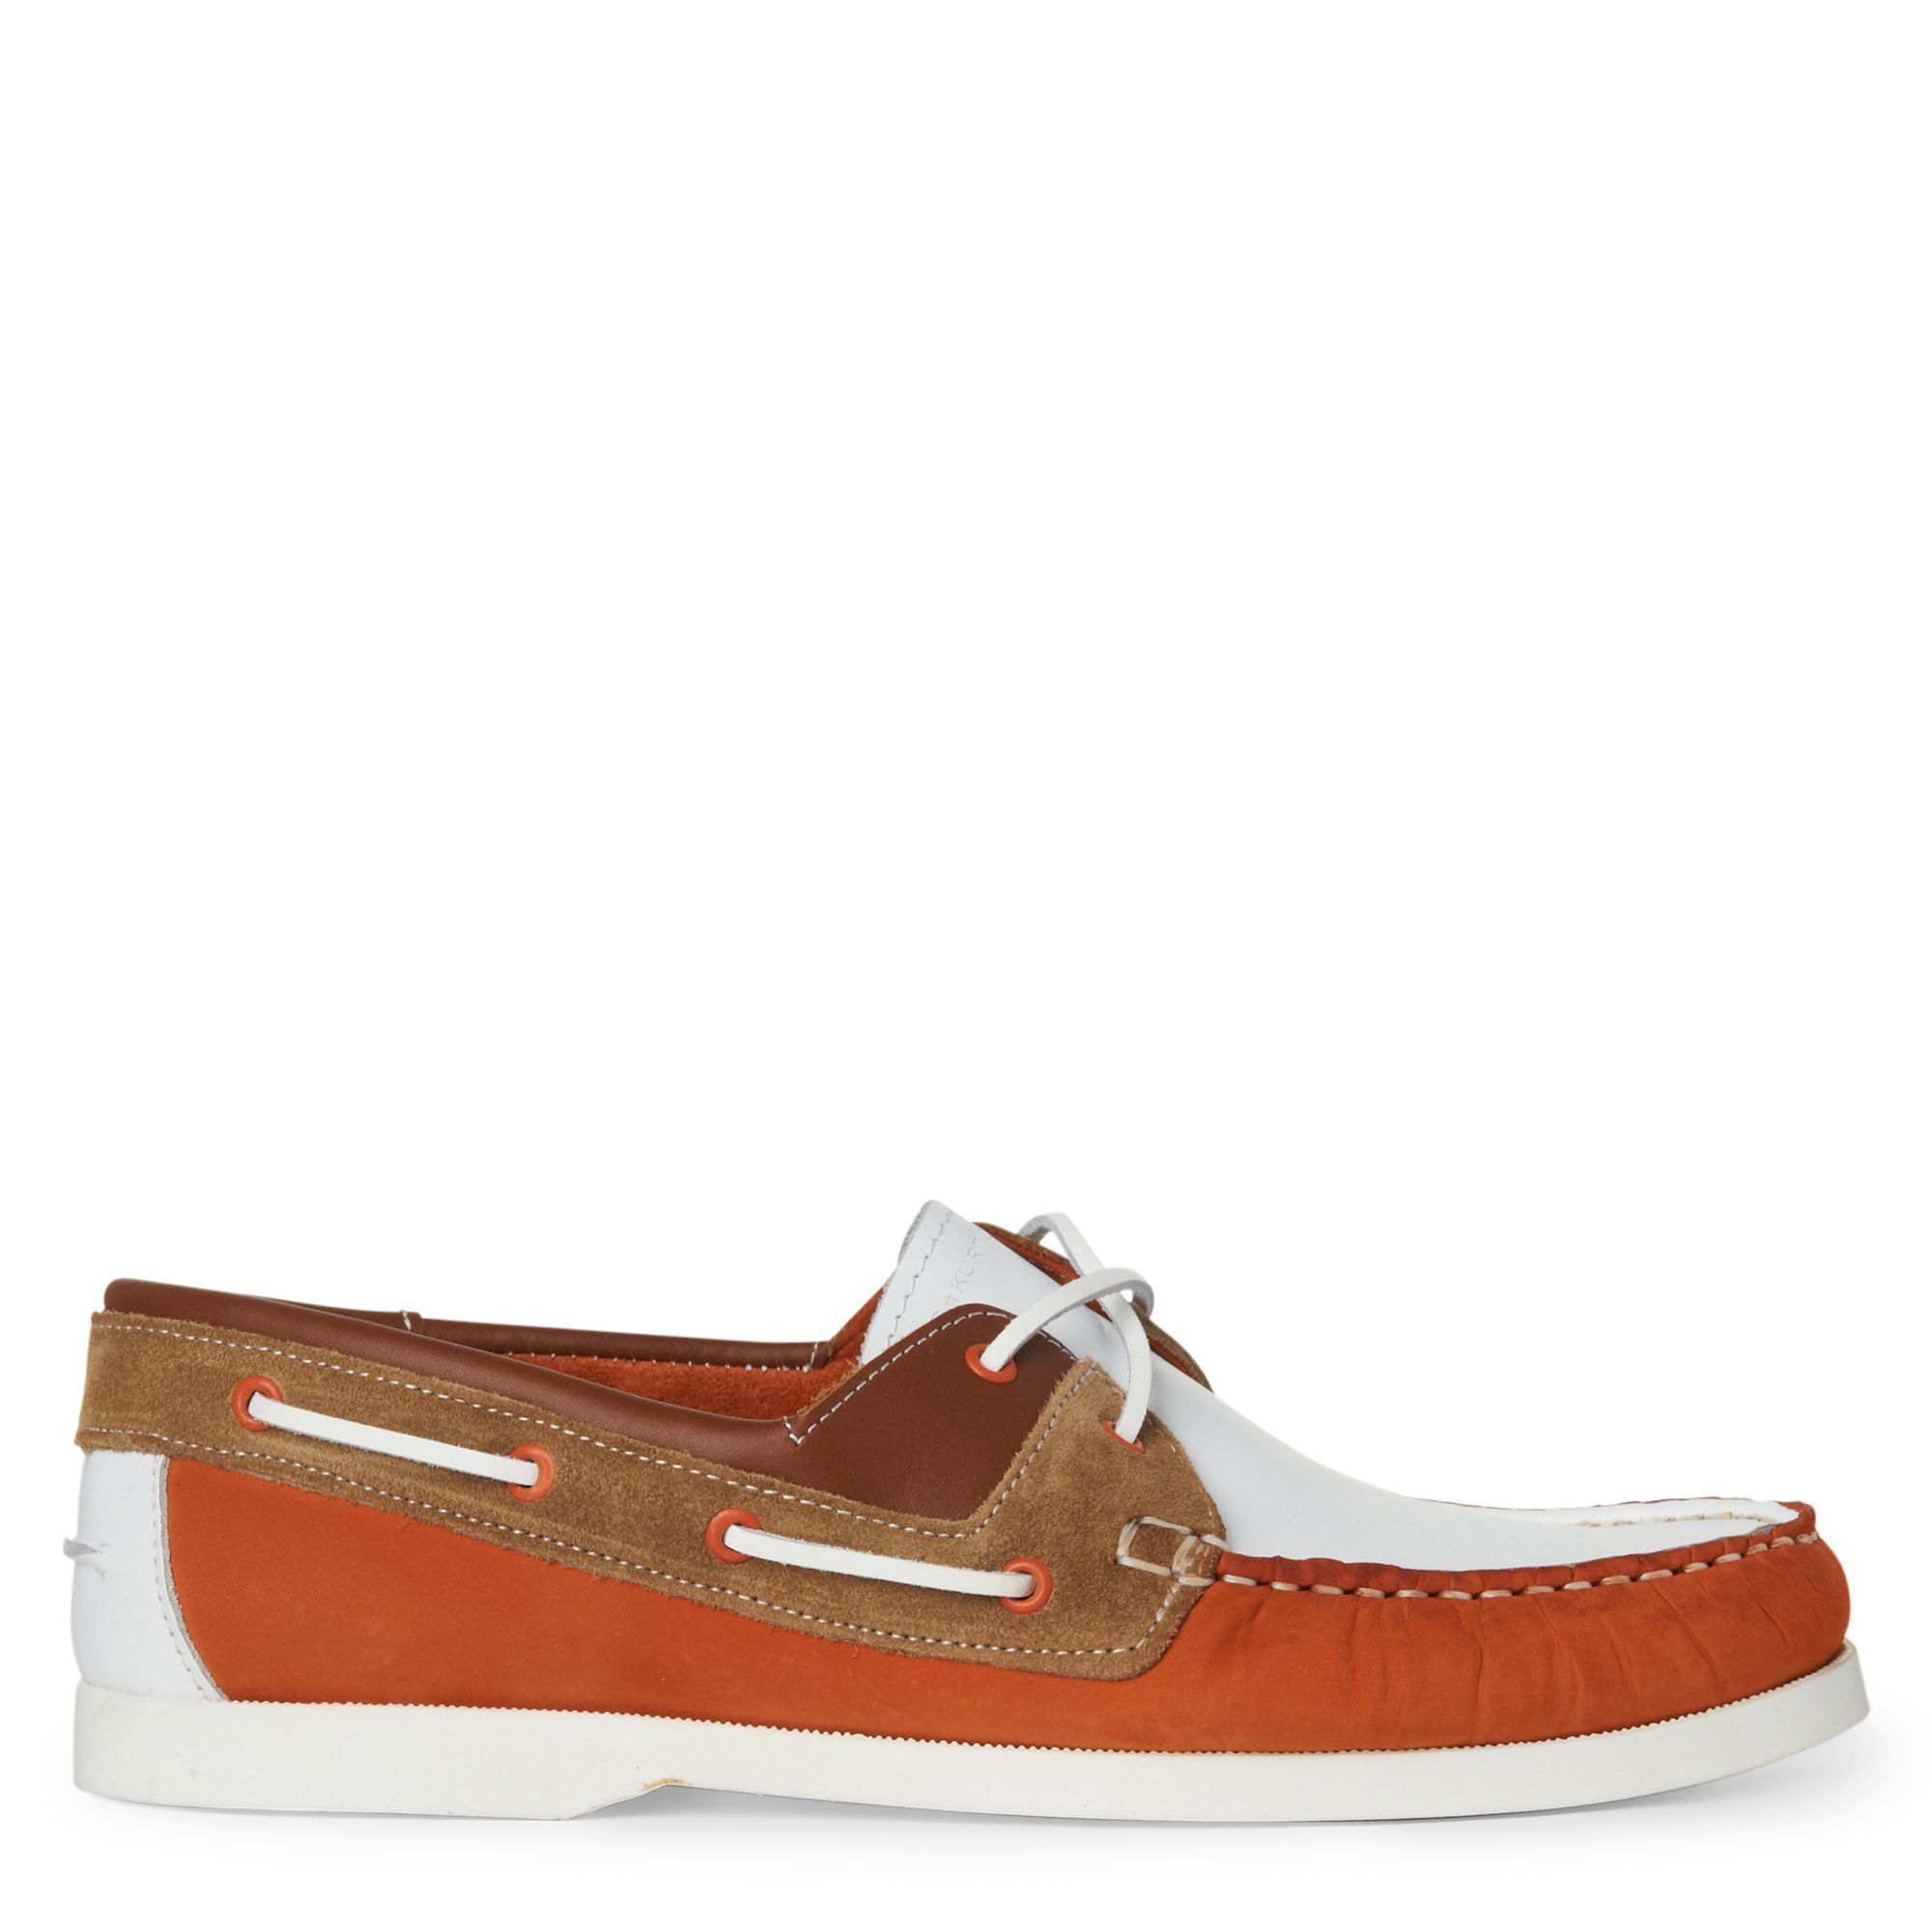 KG by Kurt Geiger Sorrento Laceup Shoes in Orange (Brown) for Men